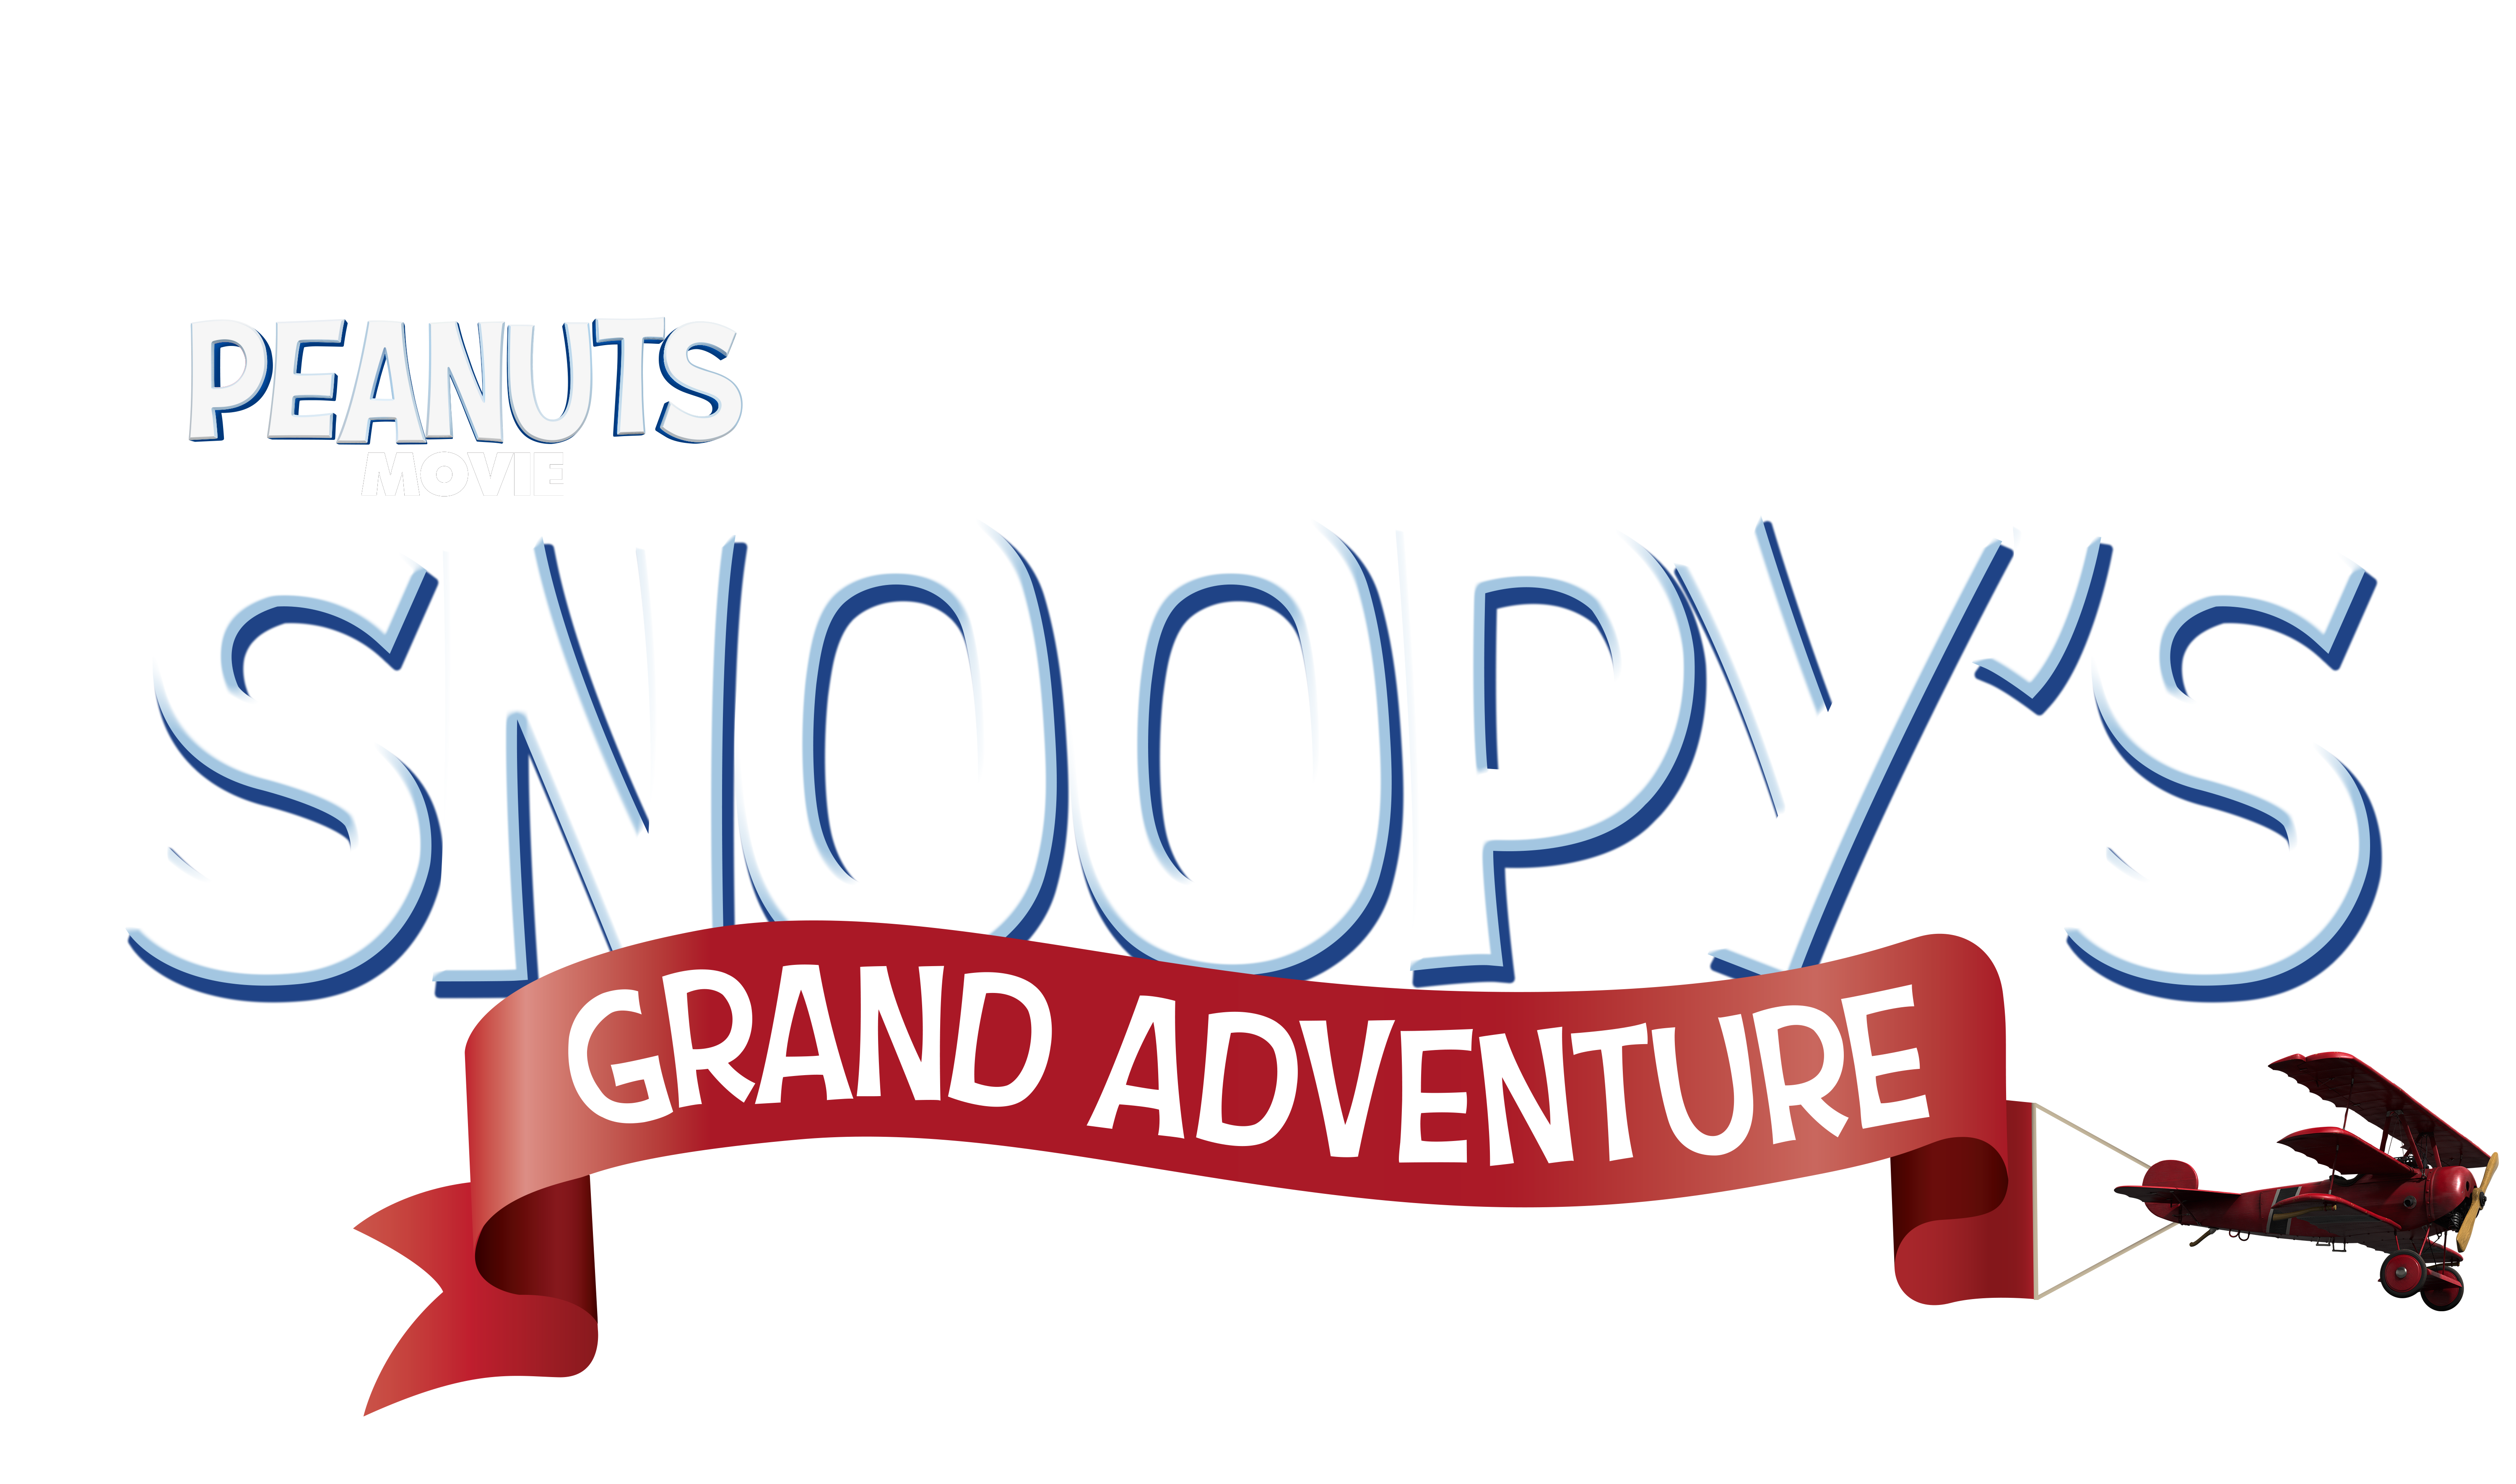 the peanuts movie logo png